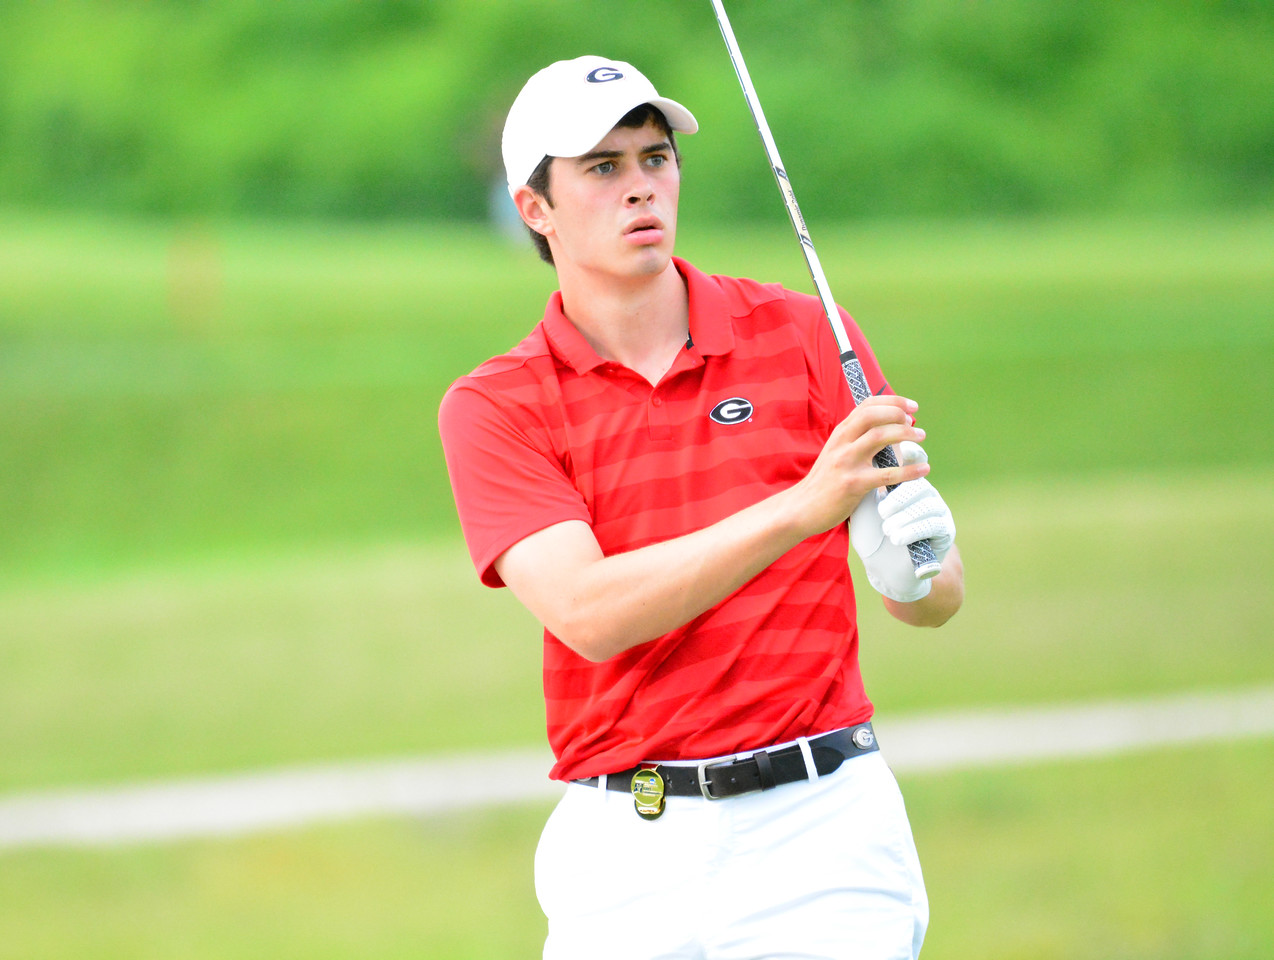 Georgia's Davis Thompson during the NCAA Championships at Blessings Golf Club in Fayetteville, Ark., on Sunday, May 26, 2019. (Photo by Steven Colquitt)